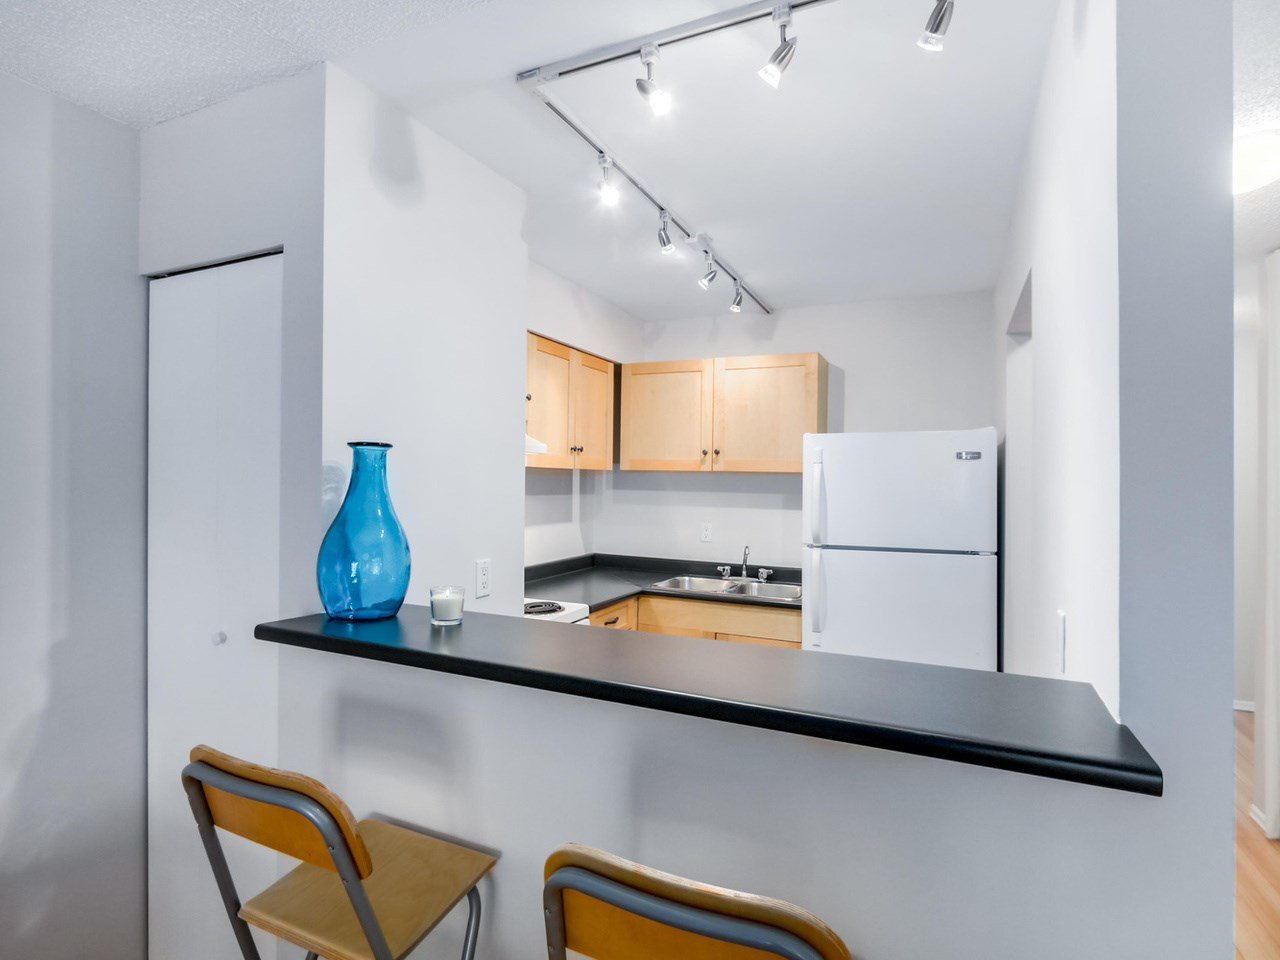 """Photo 12: Photos: 207 1545 E 2ND Avenue in Vancouver: Grandview VE Condo for sale in """"TALISHAN WOODS"""" (Vancouver East)  : MLS®# R2086466"""